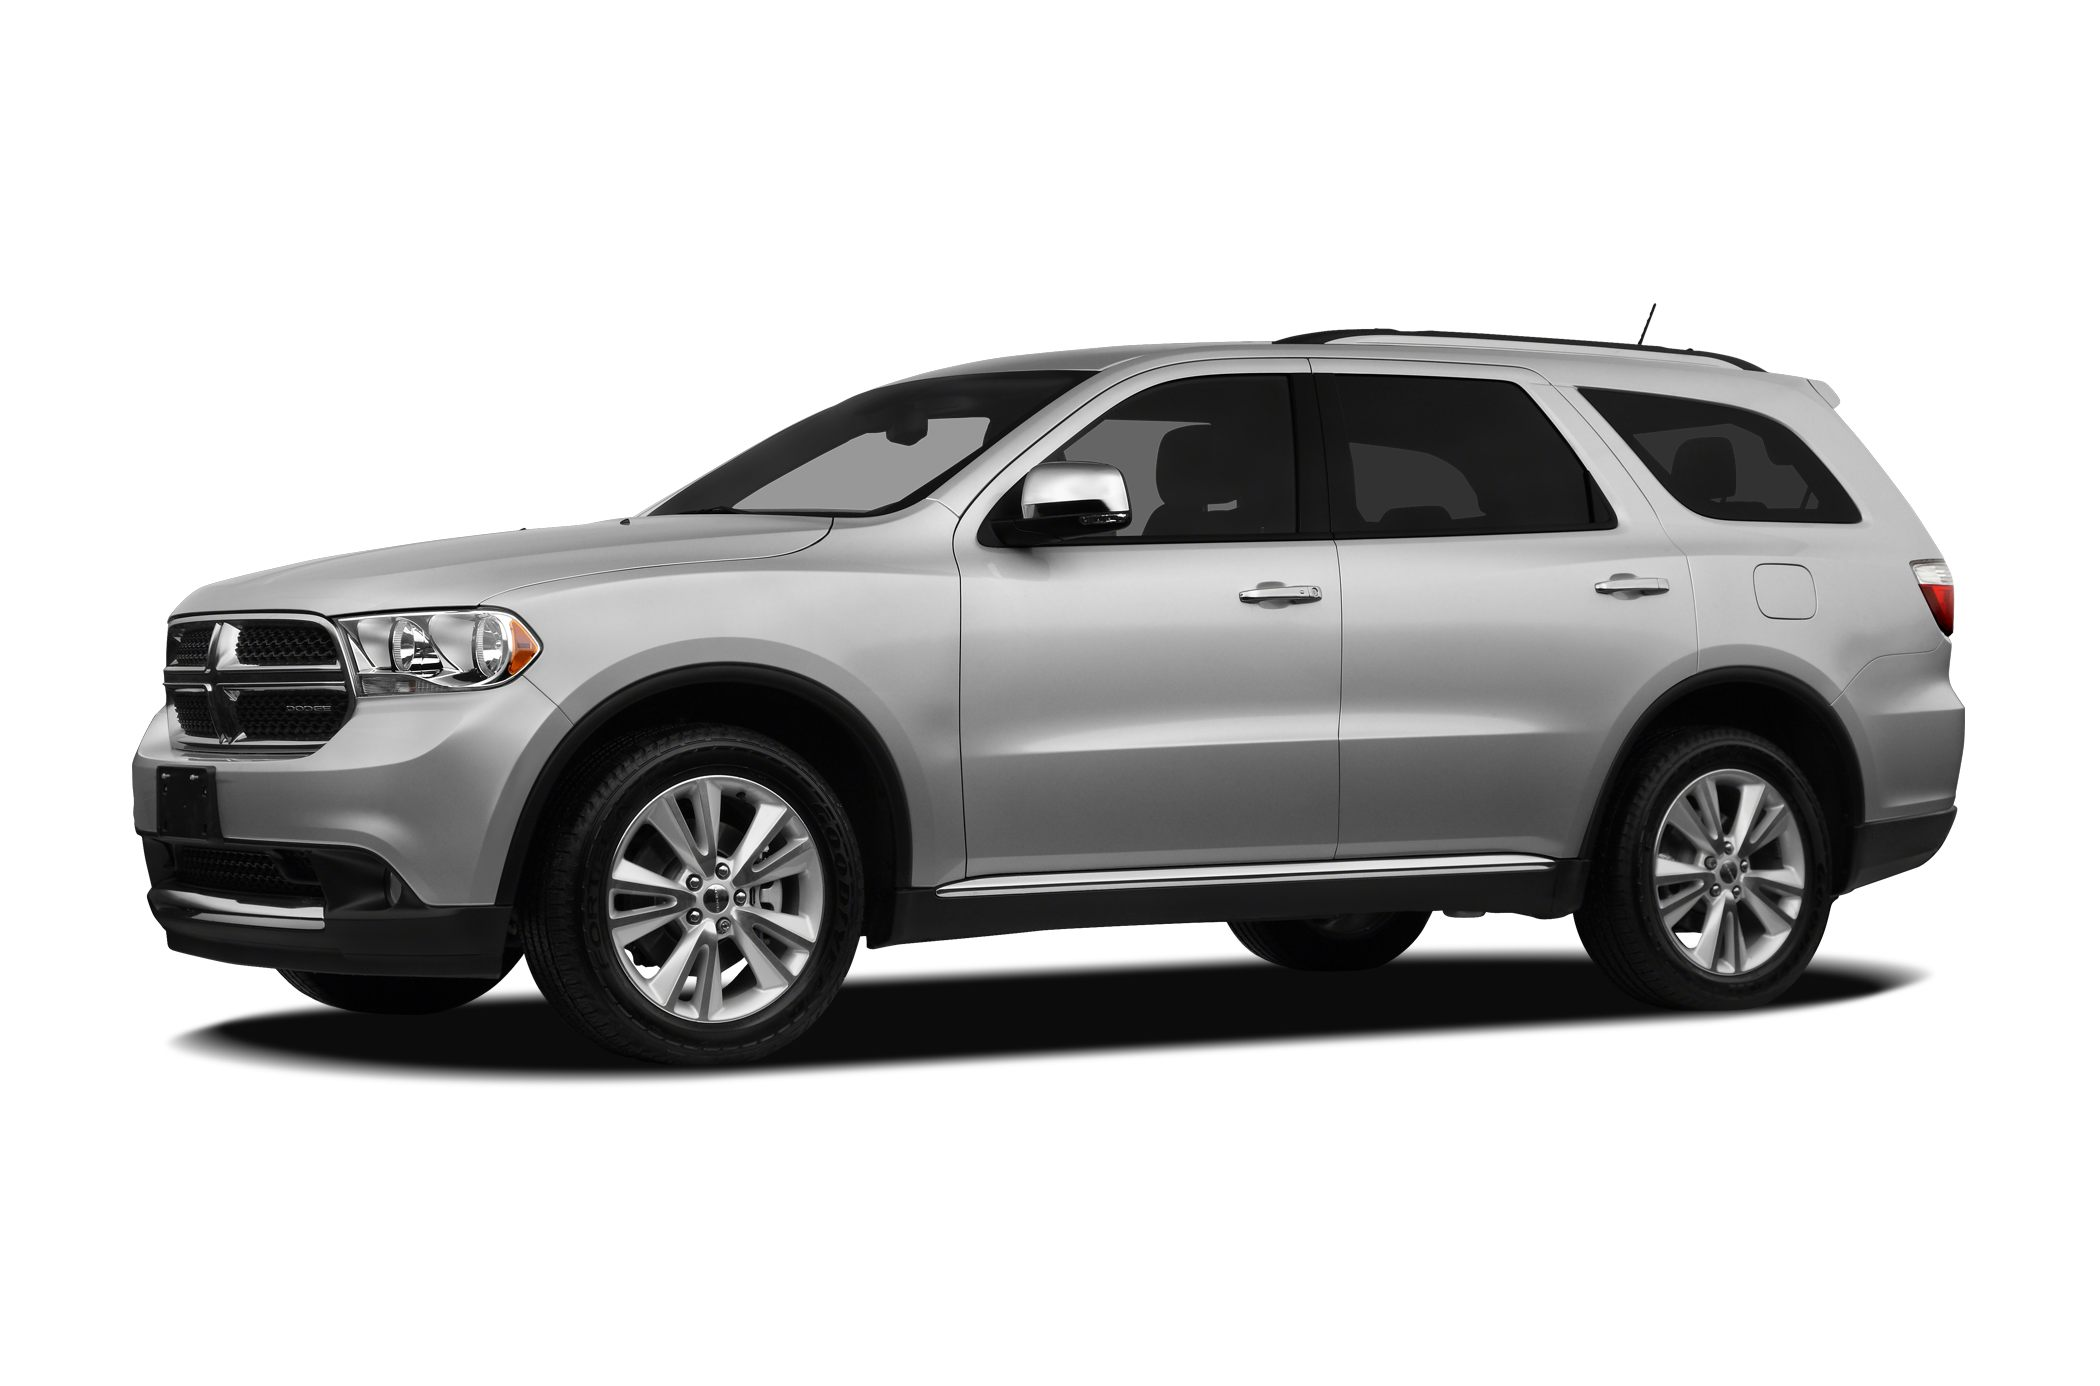 2012 Dodge Durango Crew SUV for sale in Bainbridge for $24,900 with 66,544 miles.